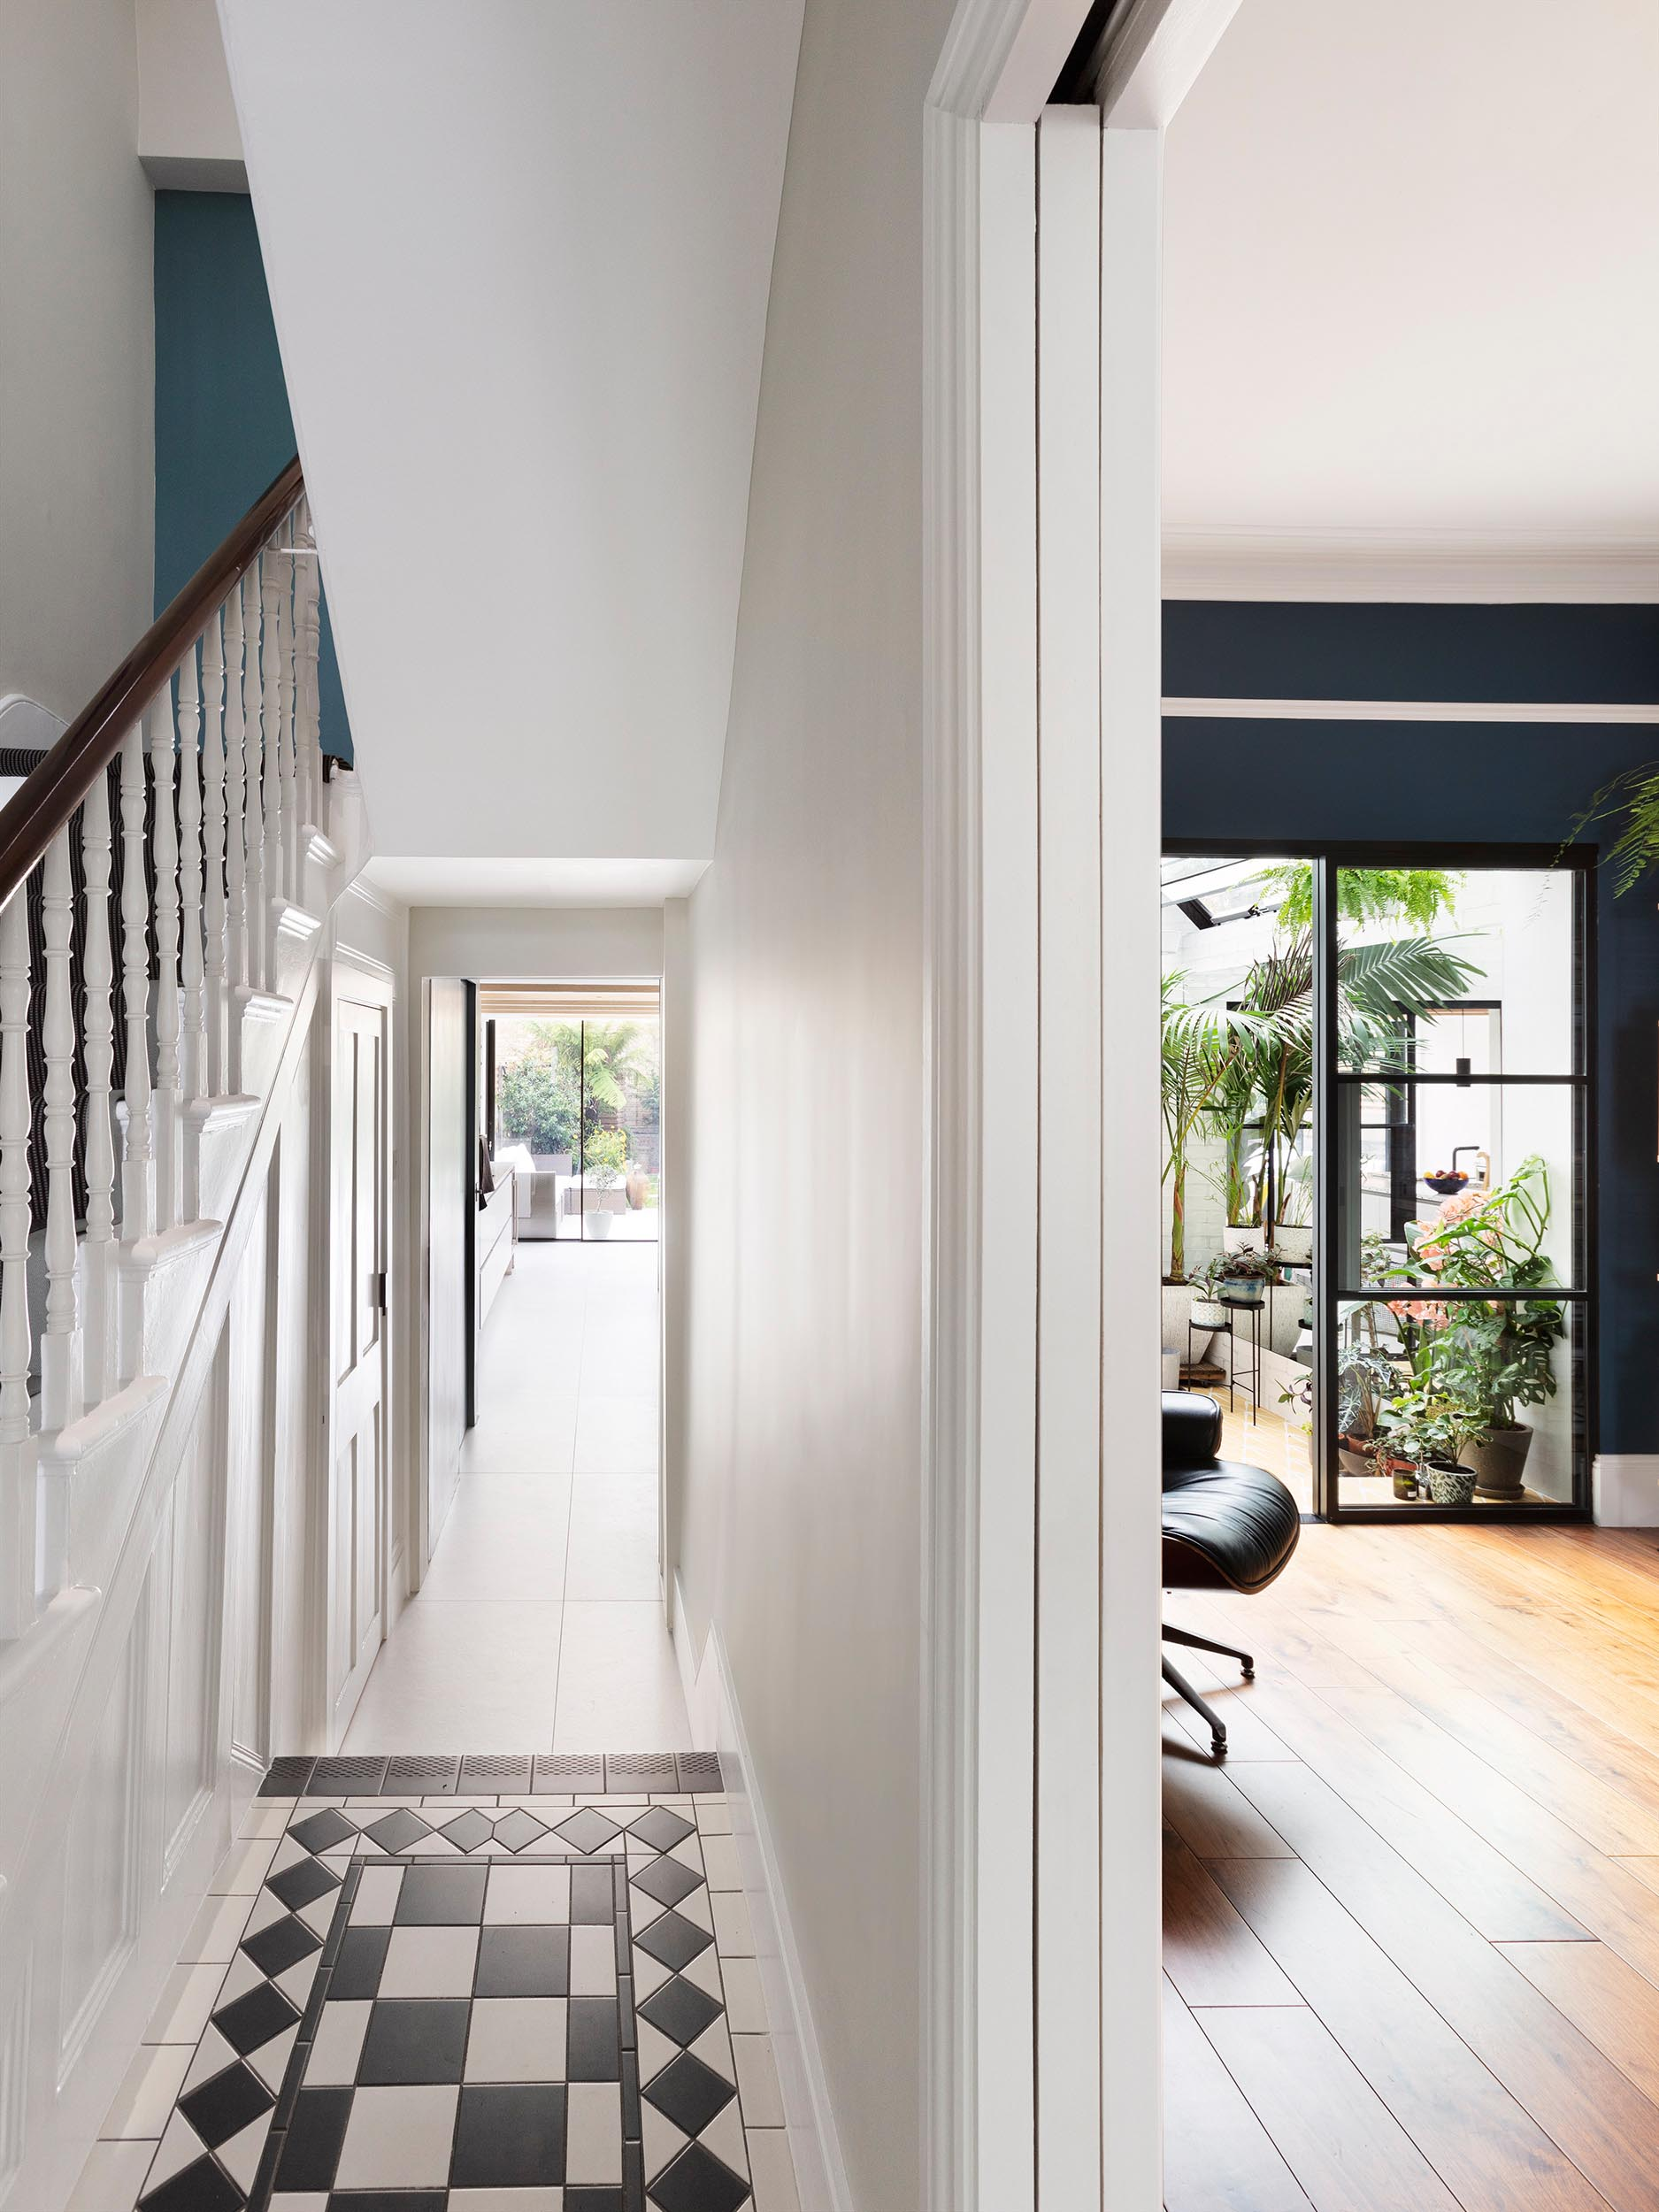 An updated Victorian terrace home with an interior garden room.